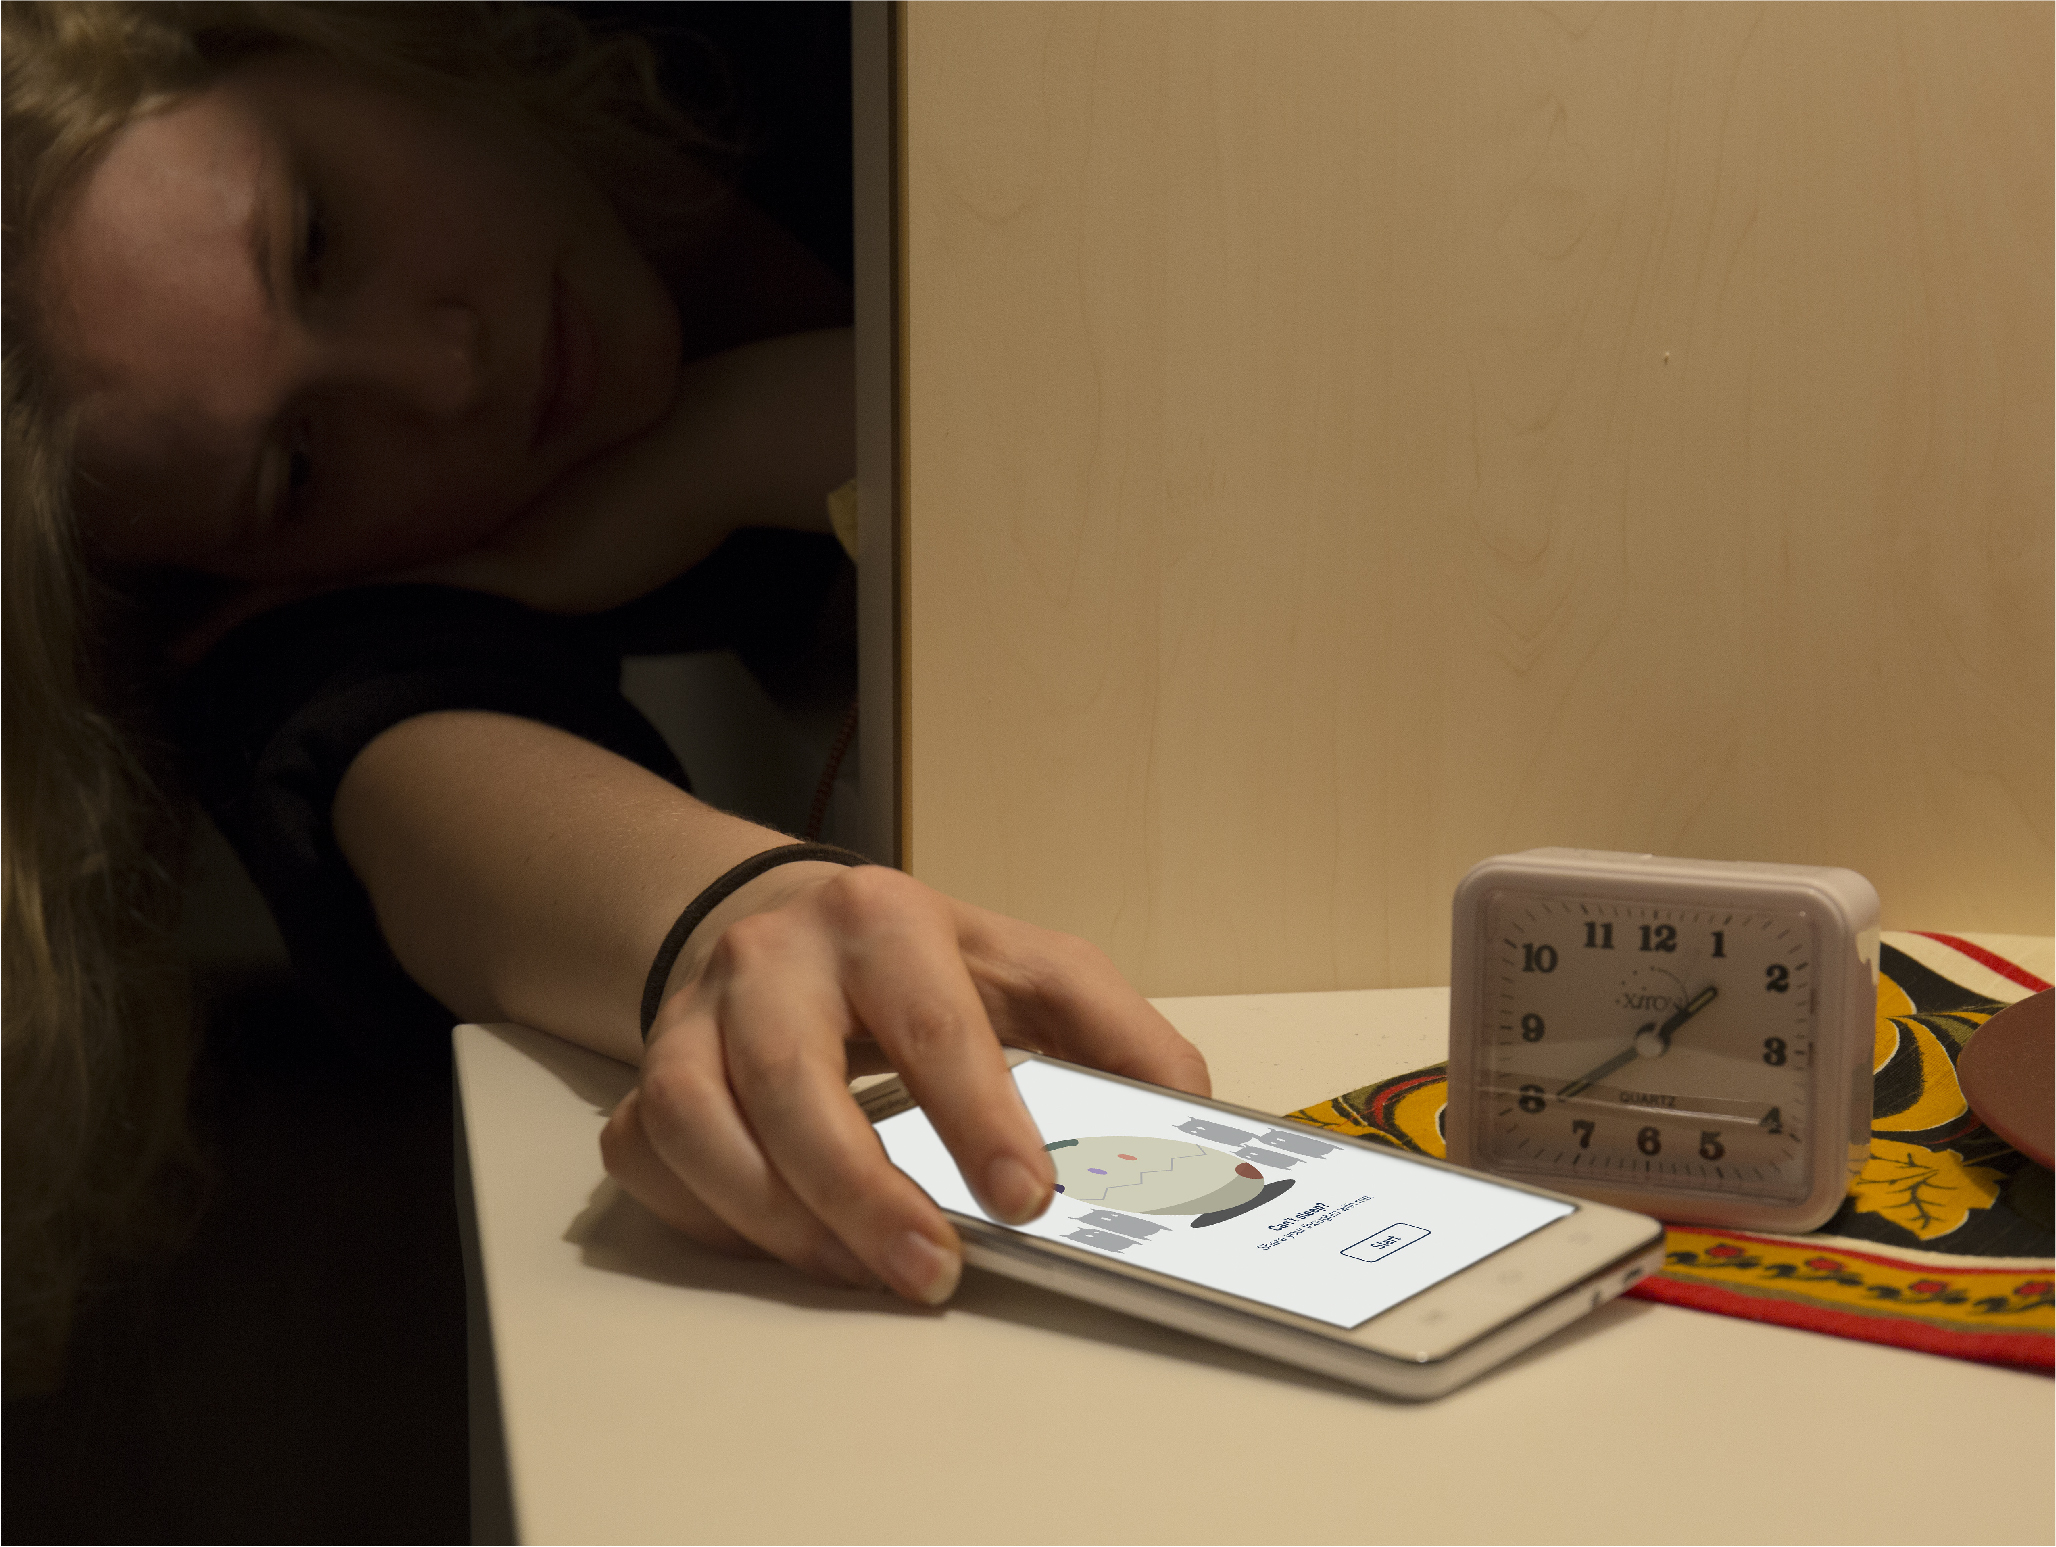 Rummi - digital sleep diary for insomnia people    Read more